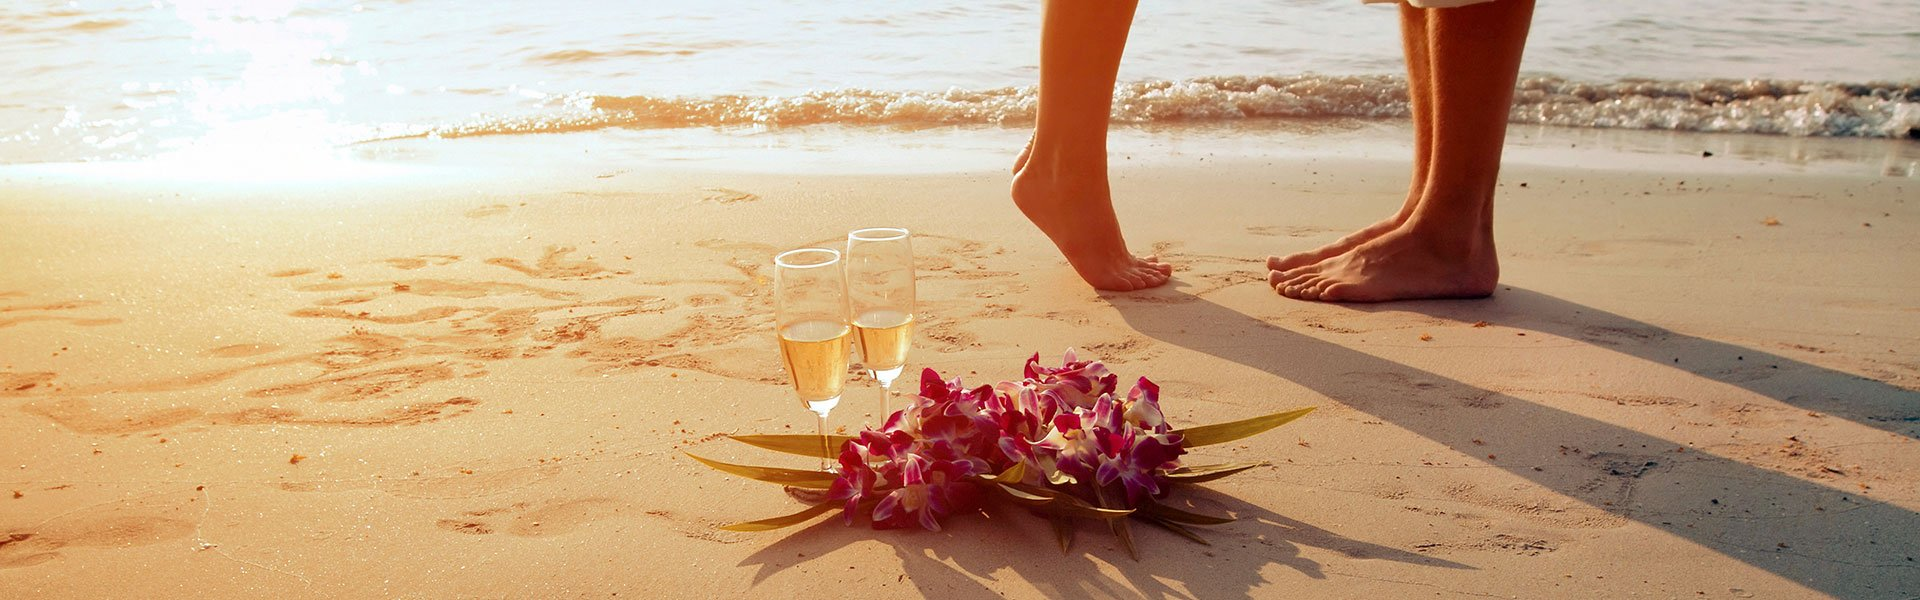 feet shot with champagne glasses on the sand next to them